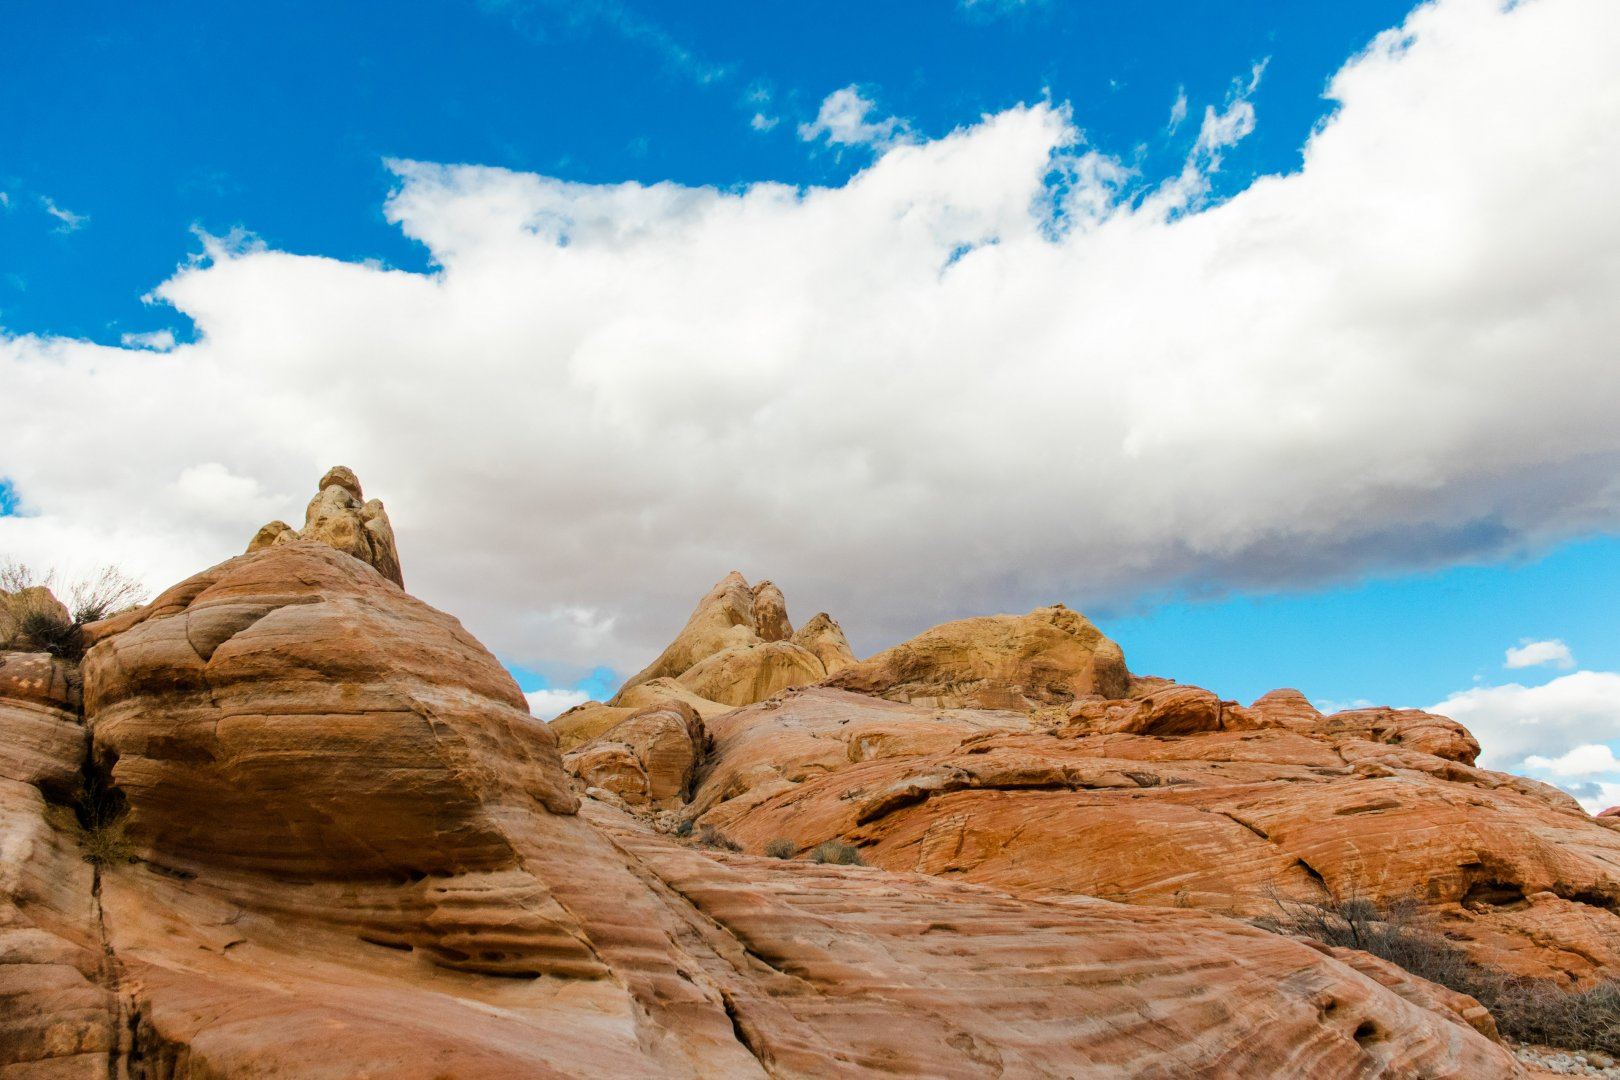 Sky Nature Rock Natural landscape Cloud Badlands Formation Daytime Outcrop Wilderness Landscape Geology Mountain National park Tree Cumulus Bedrock Canyon Cliff Vacation Wadi Meteorological phenomenon Wildlife Tourism Hill Terrain Klippe State park